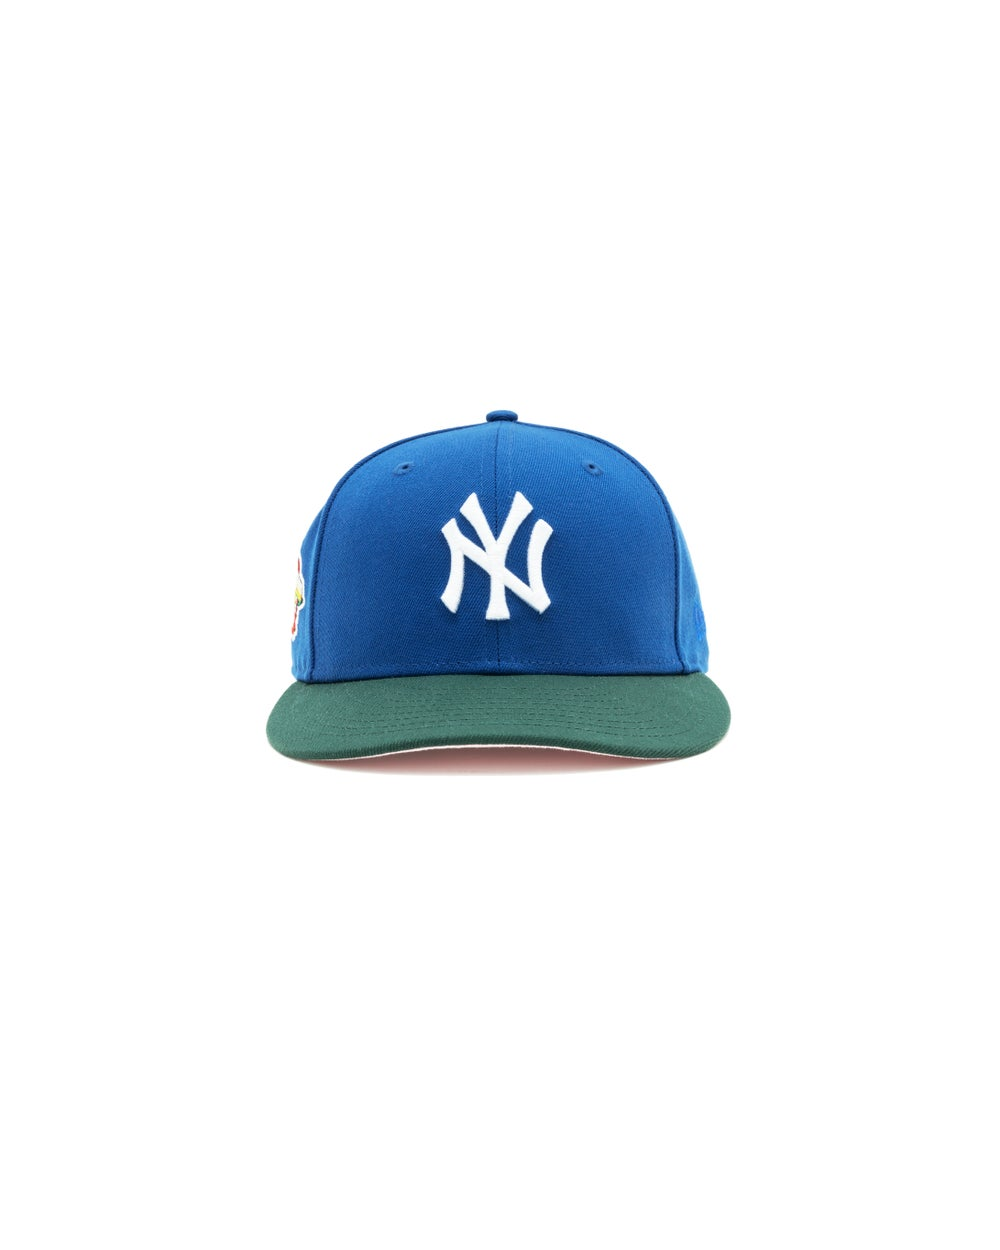 Image of Hat Club x JaeTips- Yankee Royal/Green